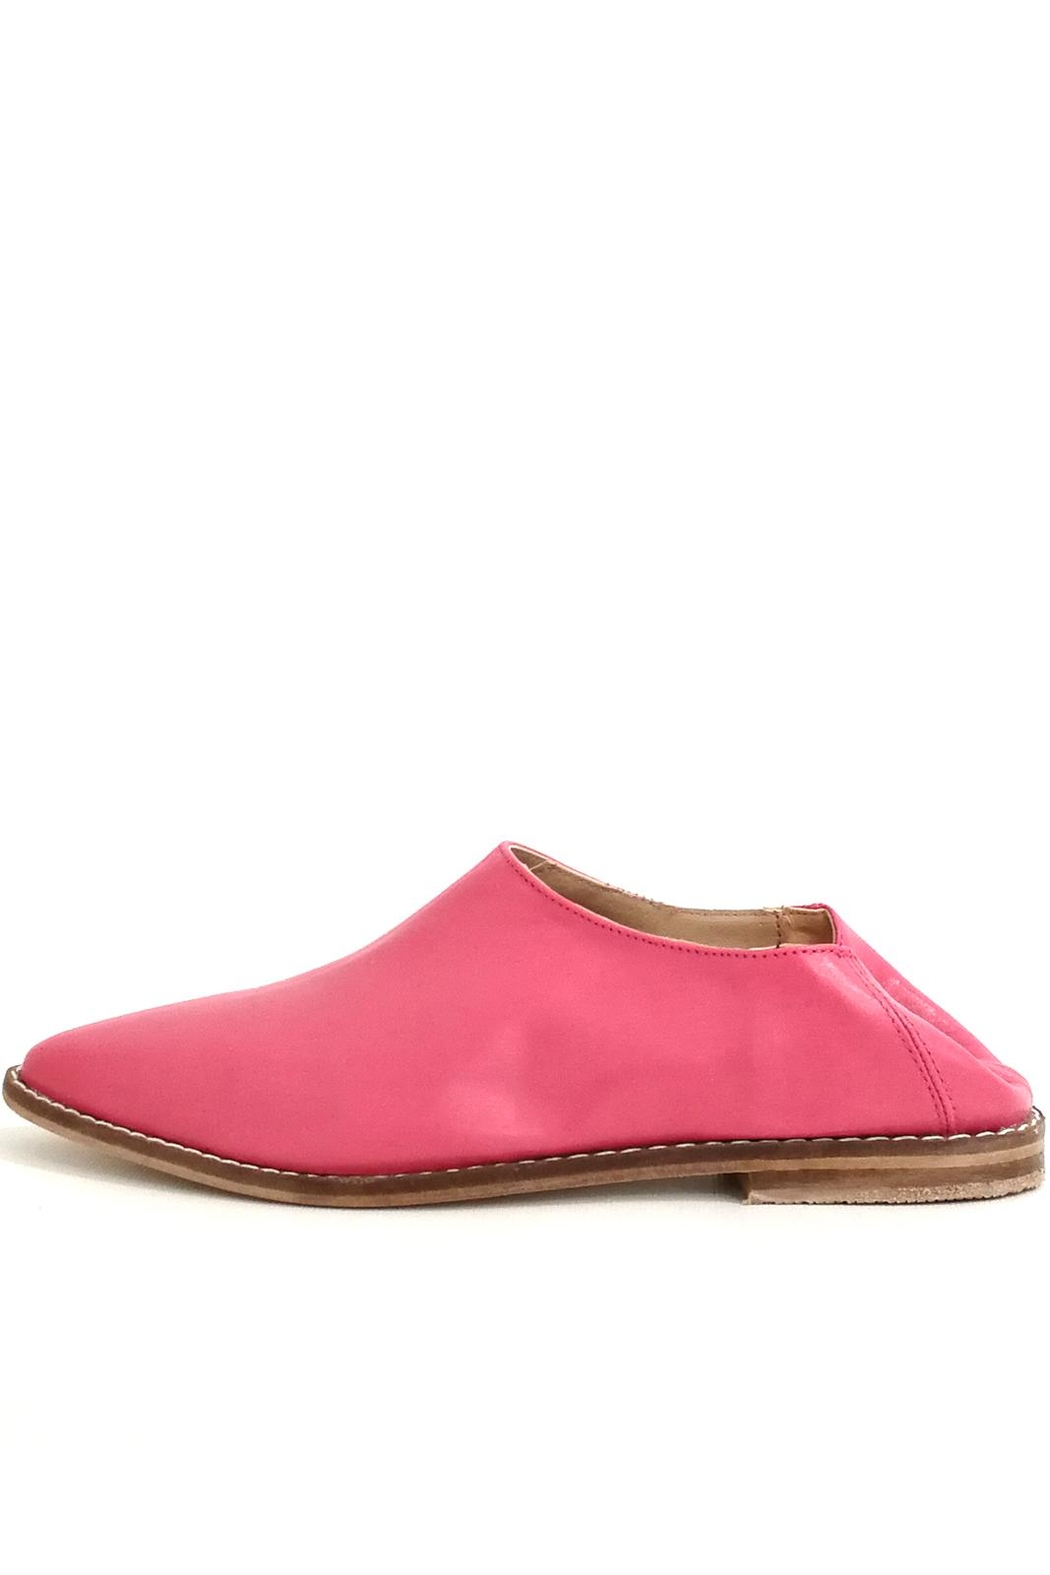 MIYE COLLAZZO Pink Mule Shoes - Front Full Image